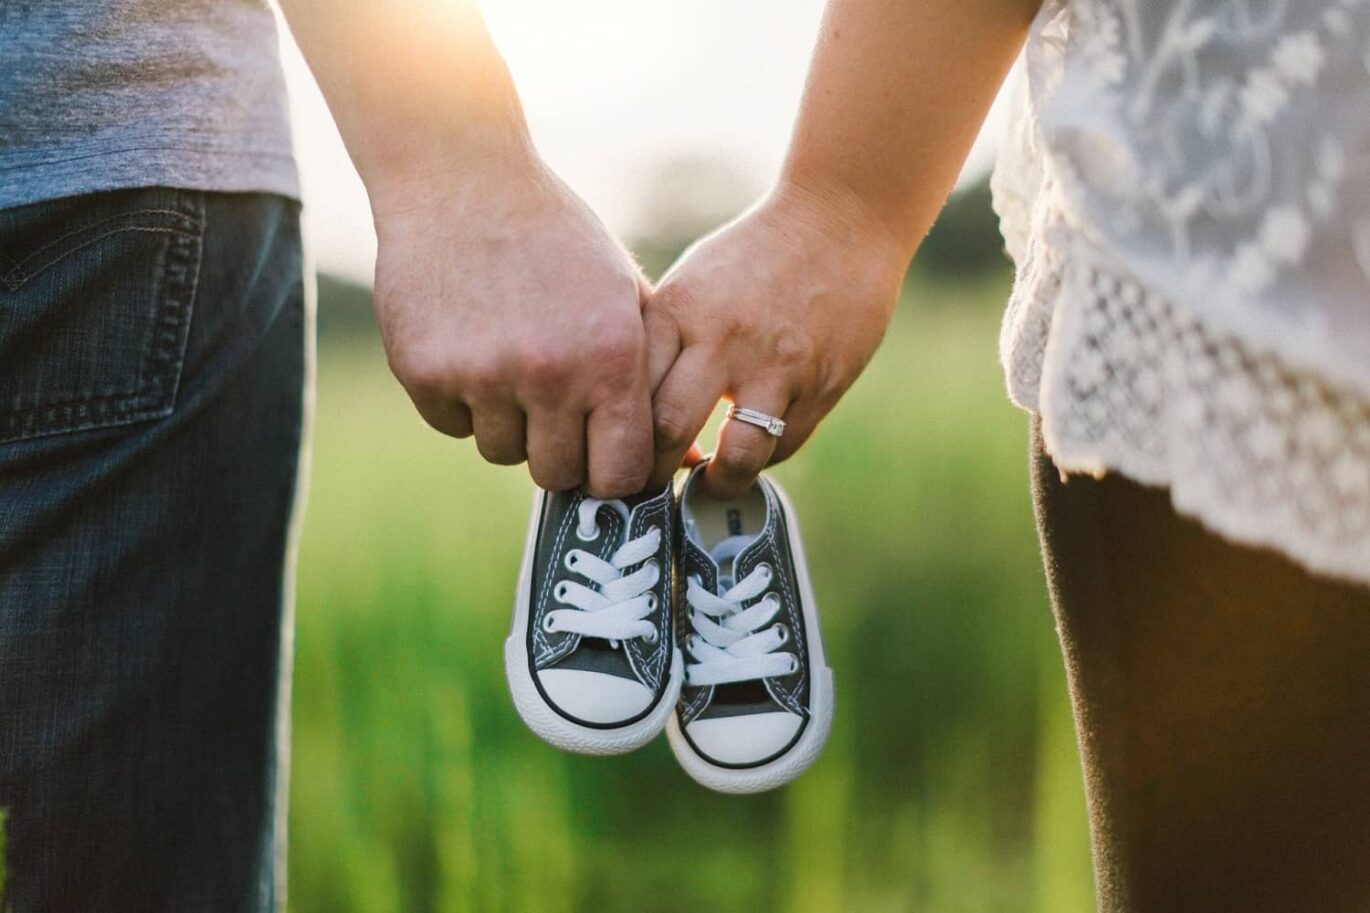 Couple holding kid's shoes in their hands